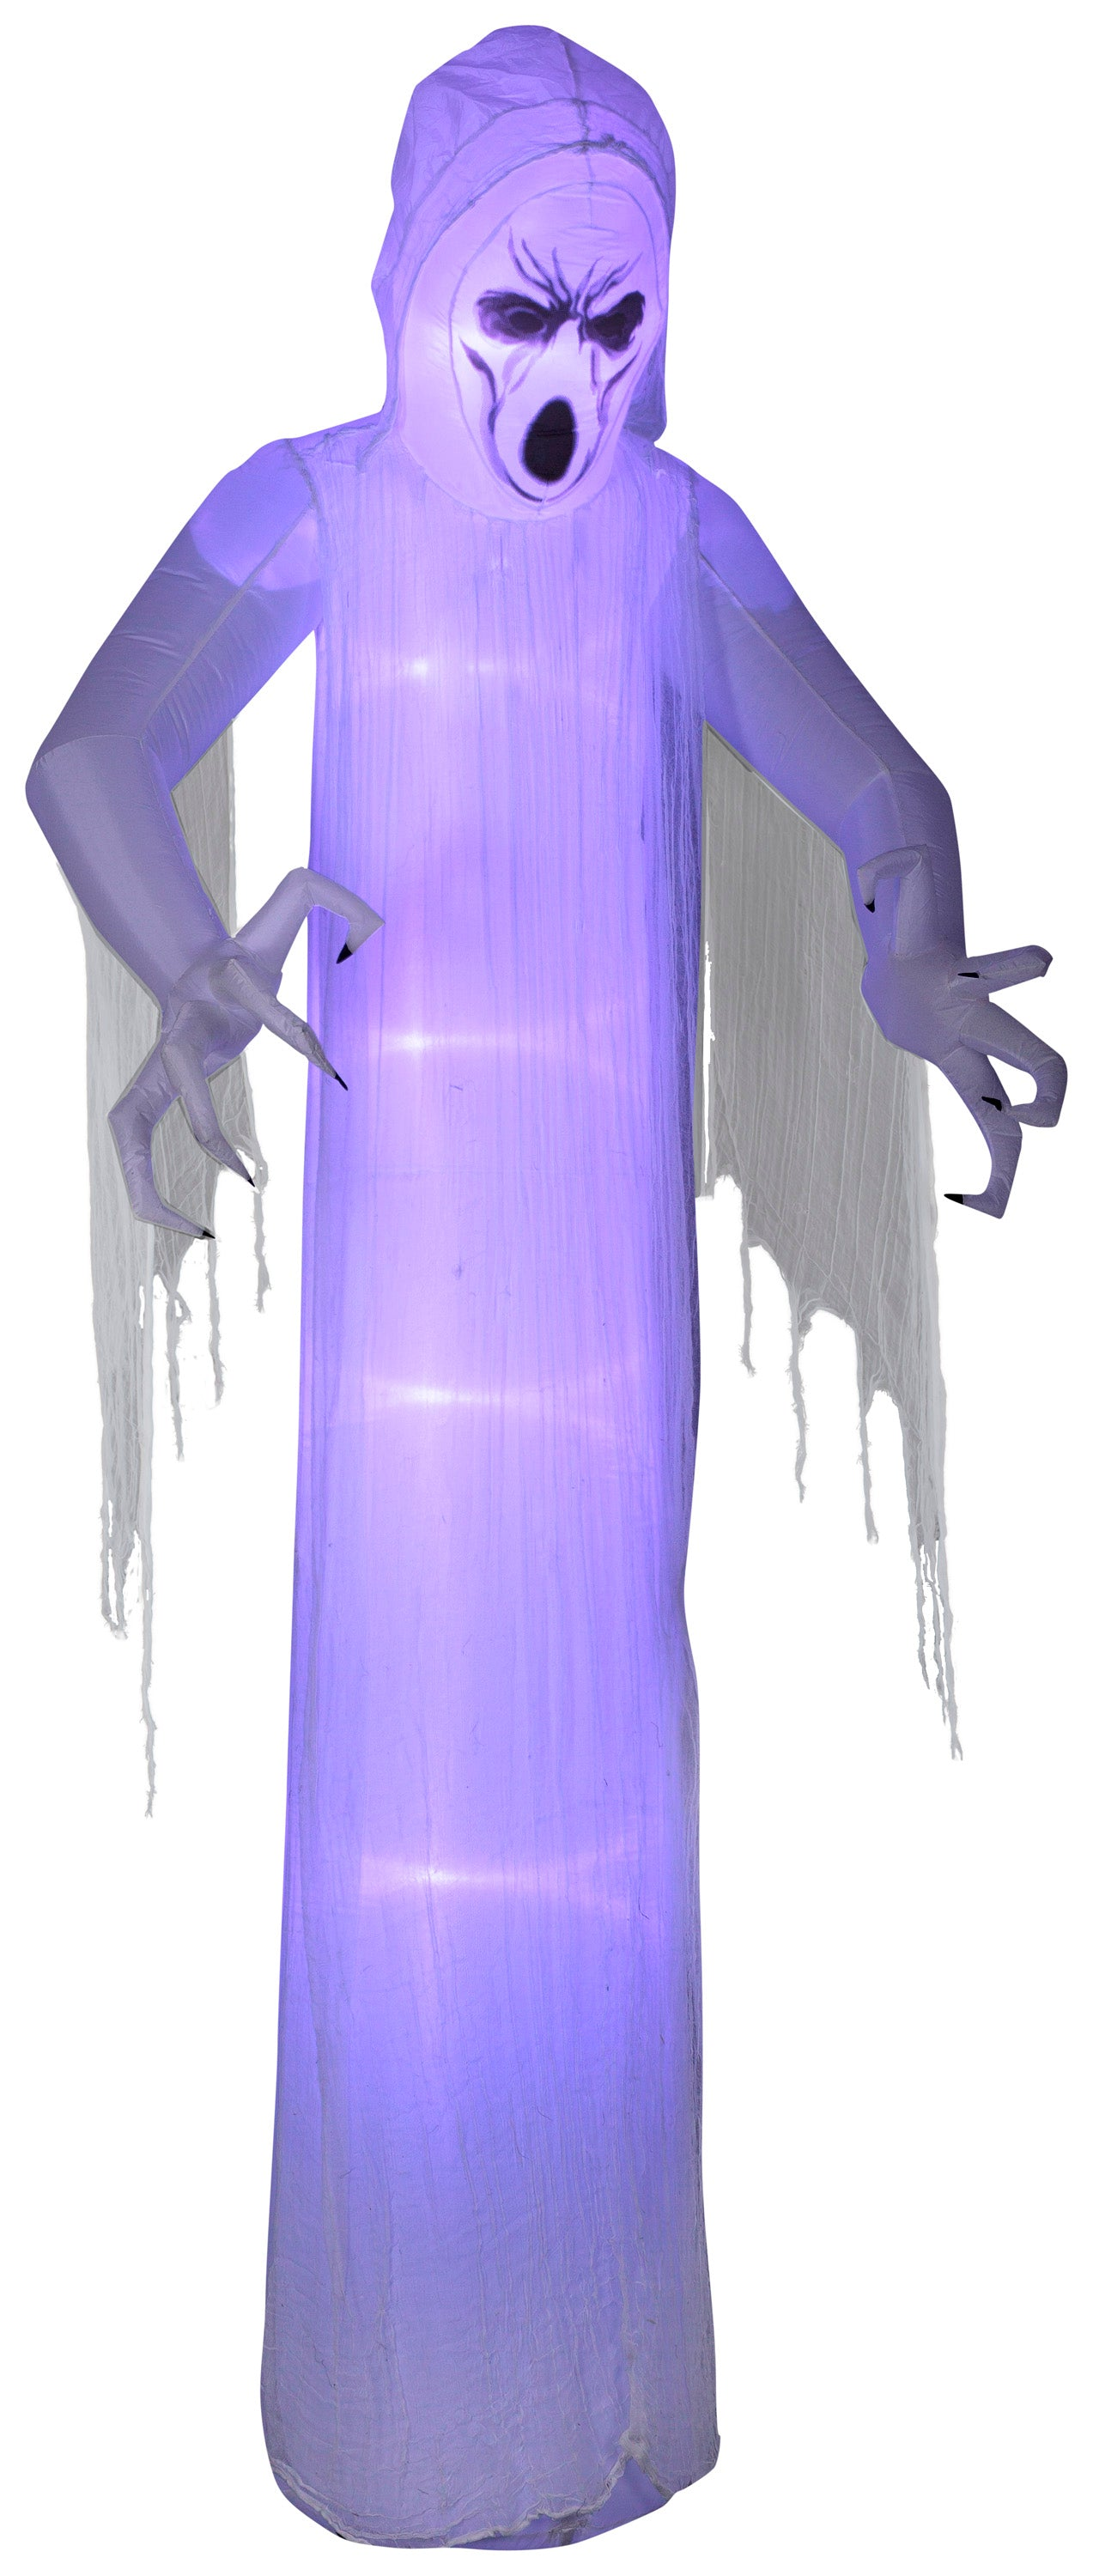 12' Lightshow Airblown ShortCircuit Frightening Ghost w/ Gauze Halloween Inflatable